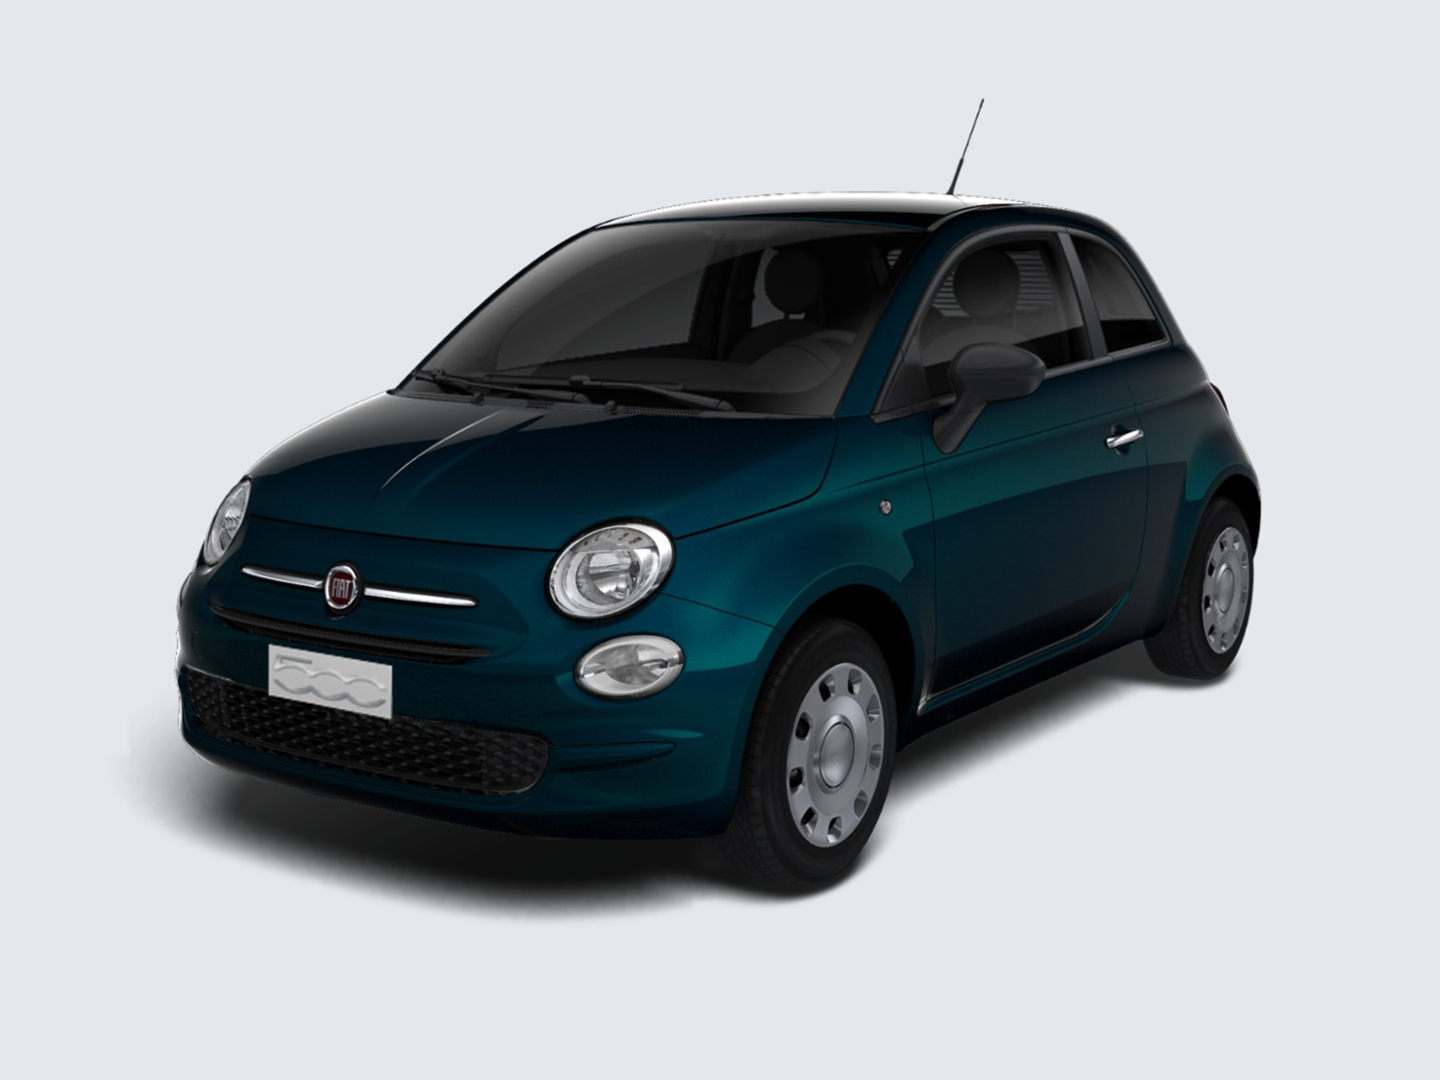 fiat 500 1 2 69cv pop blu dipinto di blu km0 a soli 10300 su miacar jdvrt. Black Bedroom Furniture Sets. Home Design Ideas